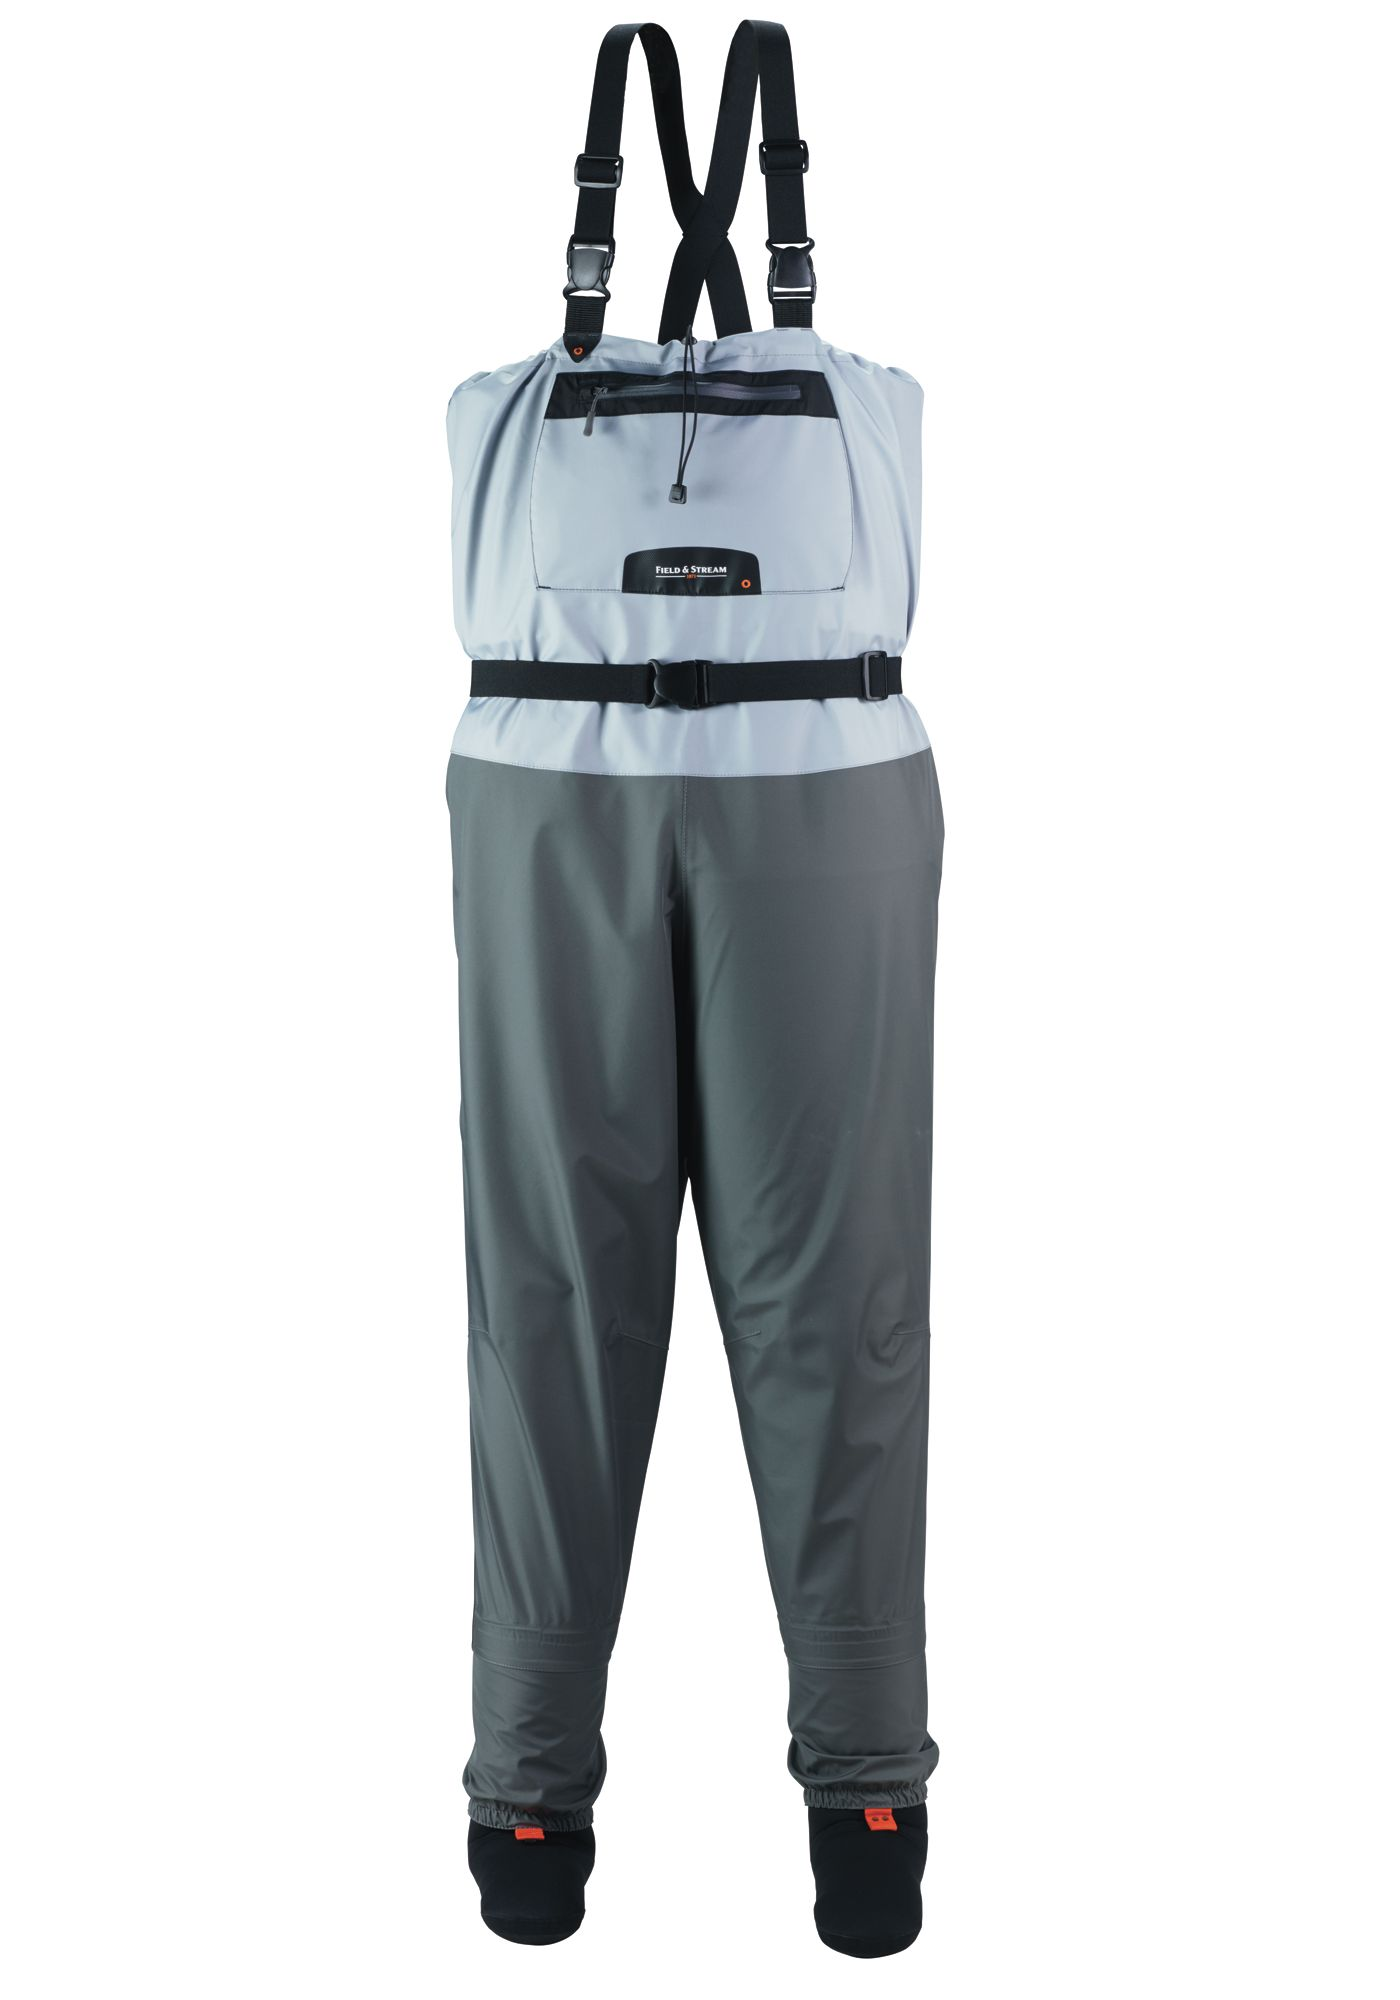 Field & Stream Angler Chest Waders